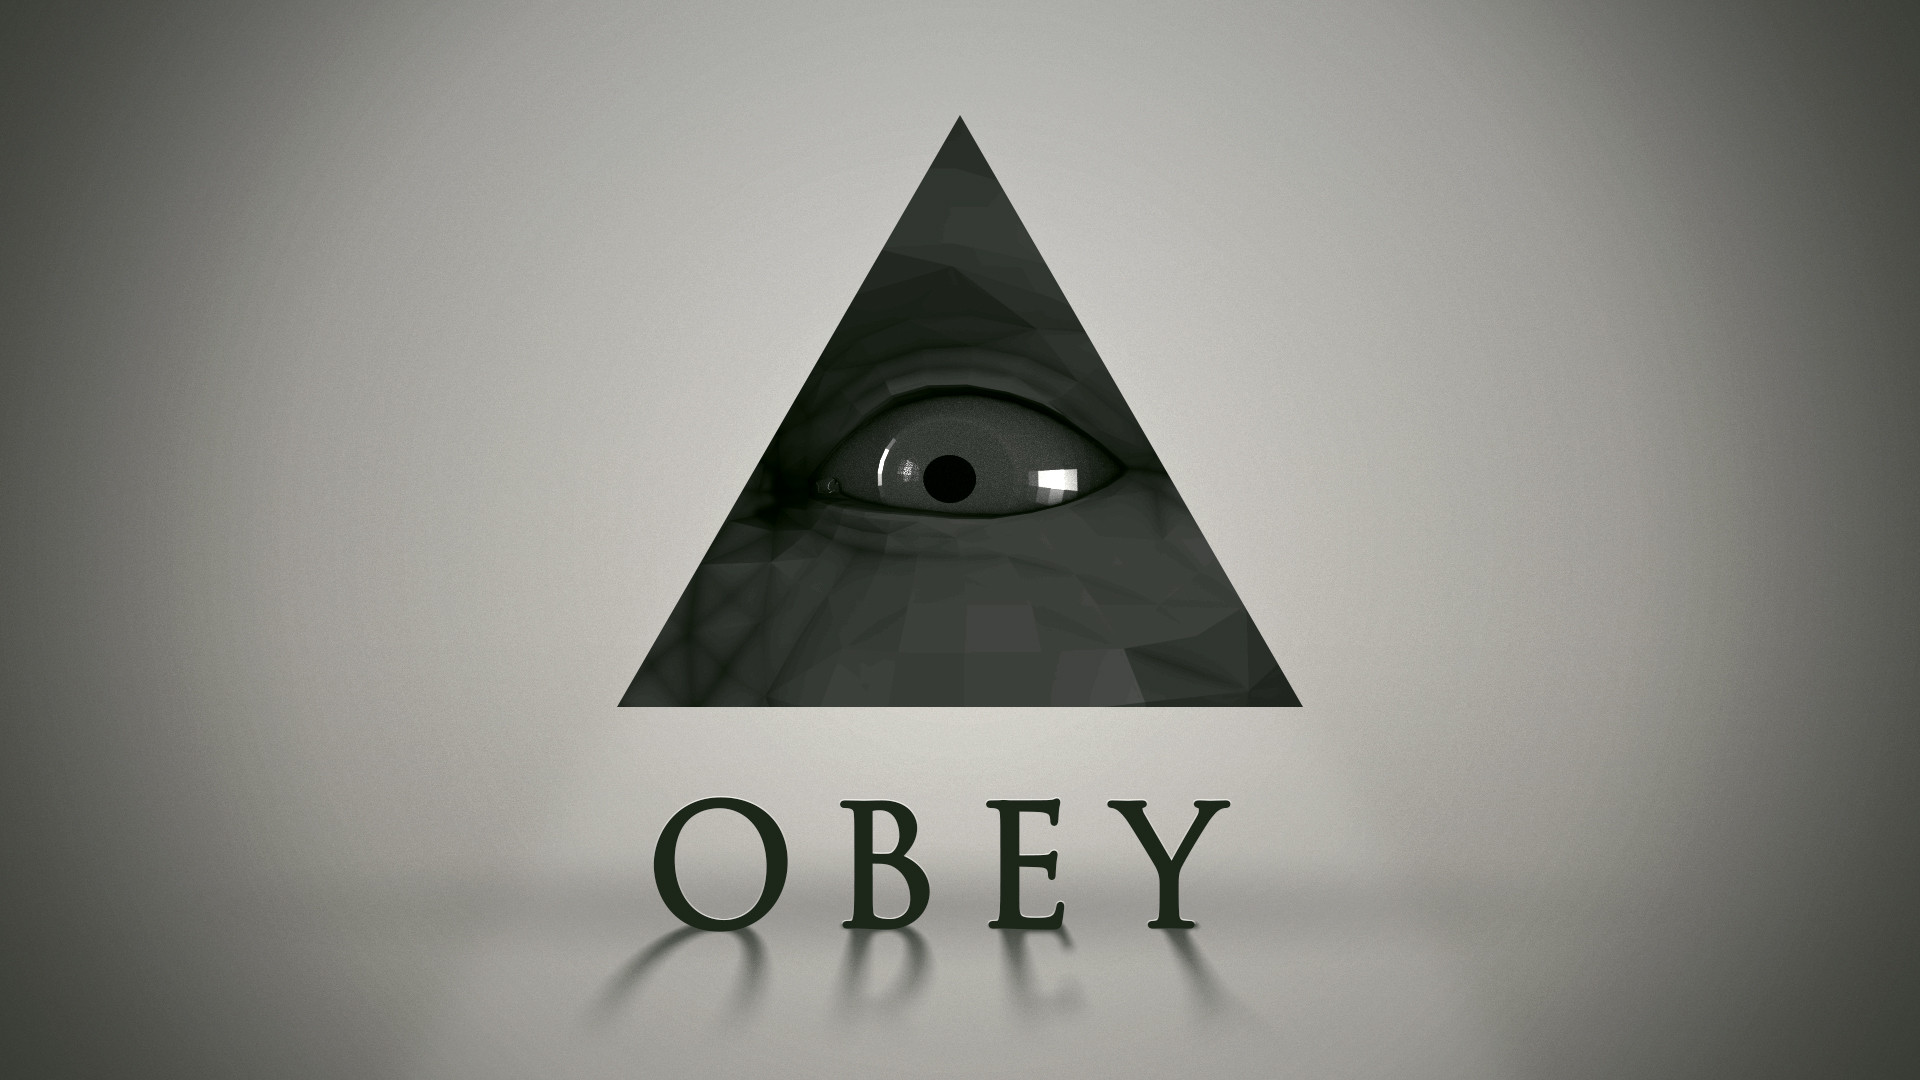 Obey Illuminati Wallpaper Images Pictures   Becuo 1920x1080